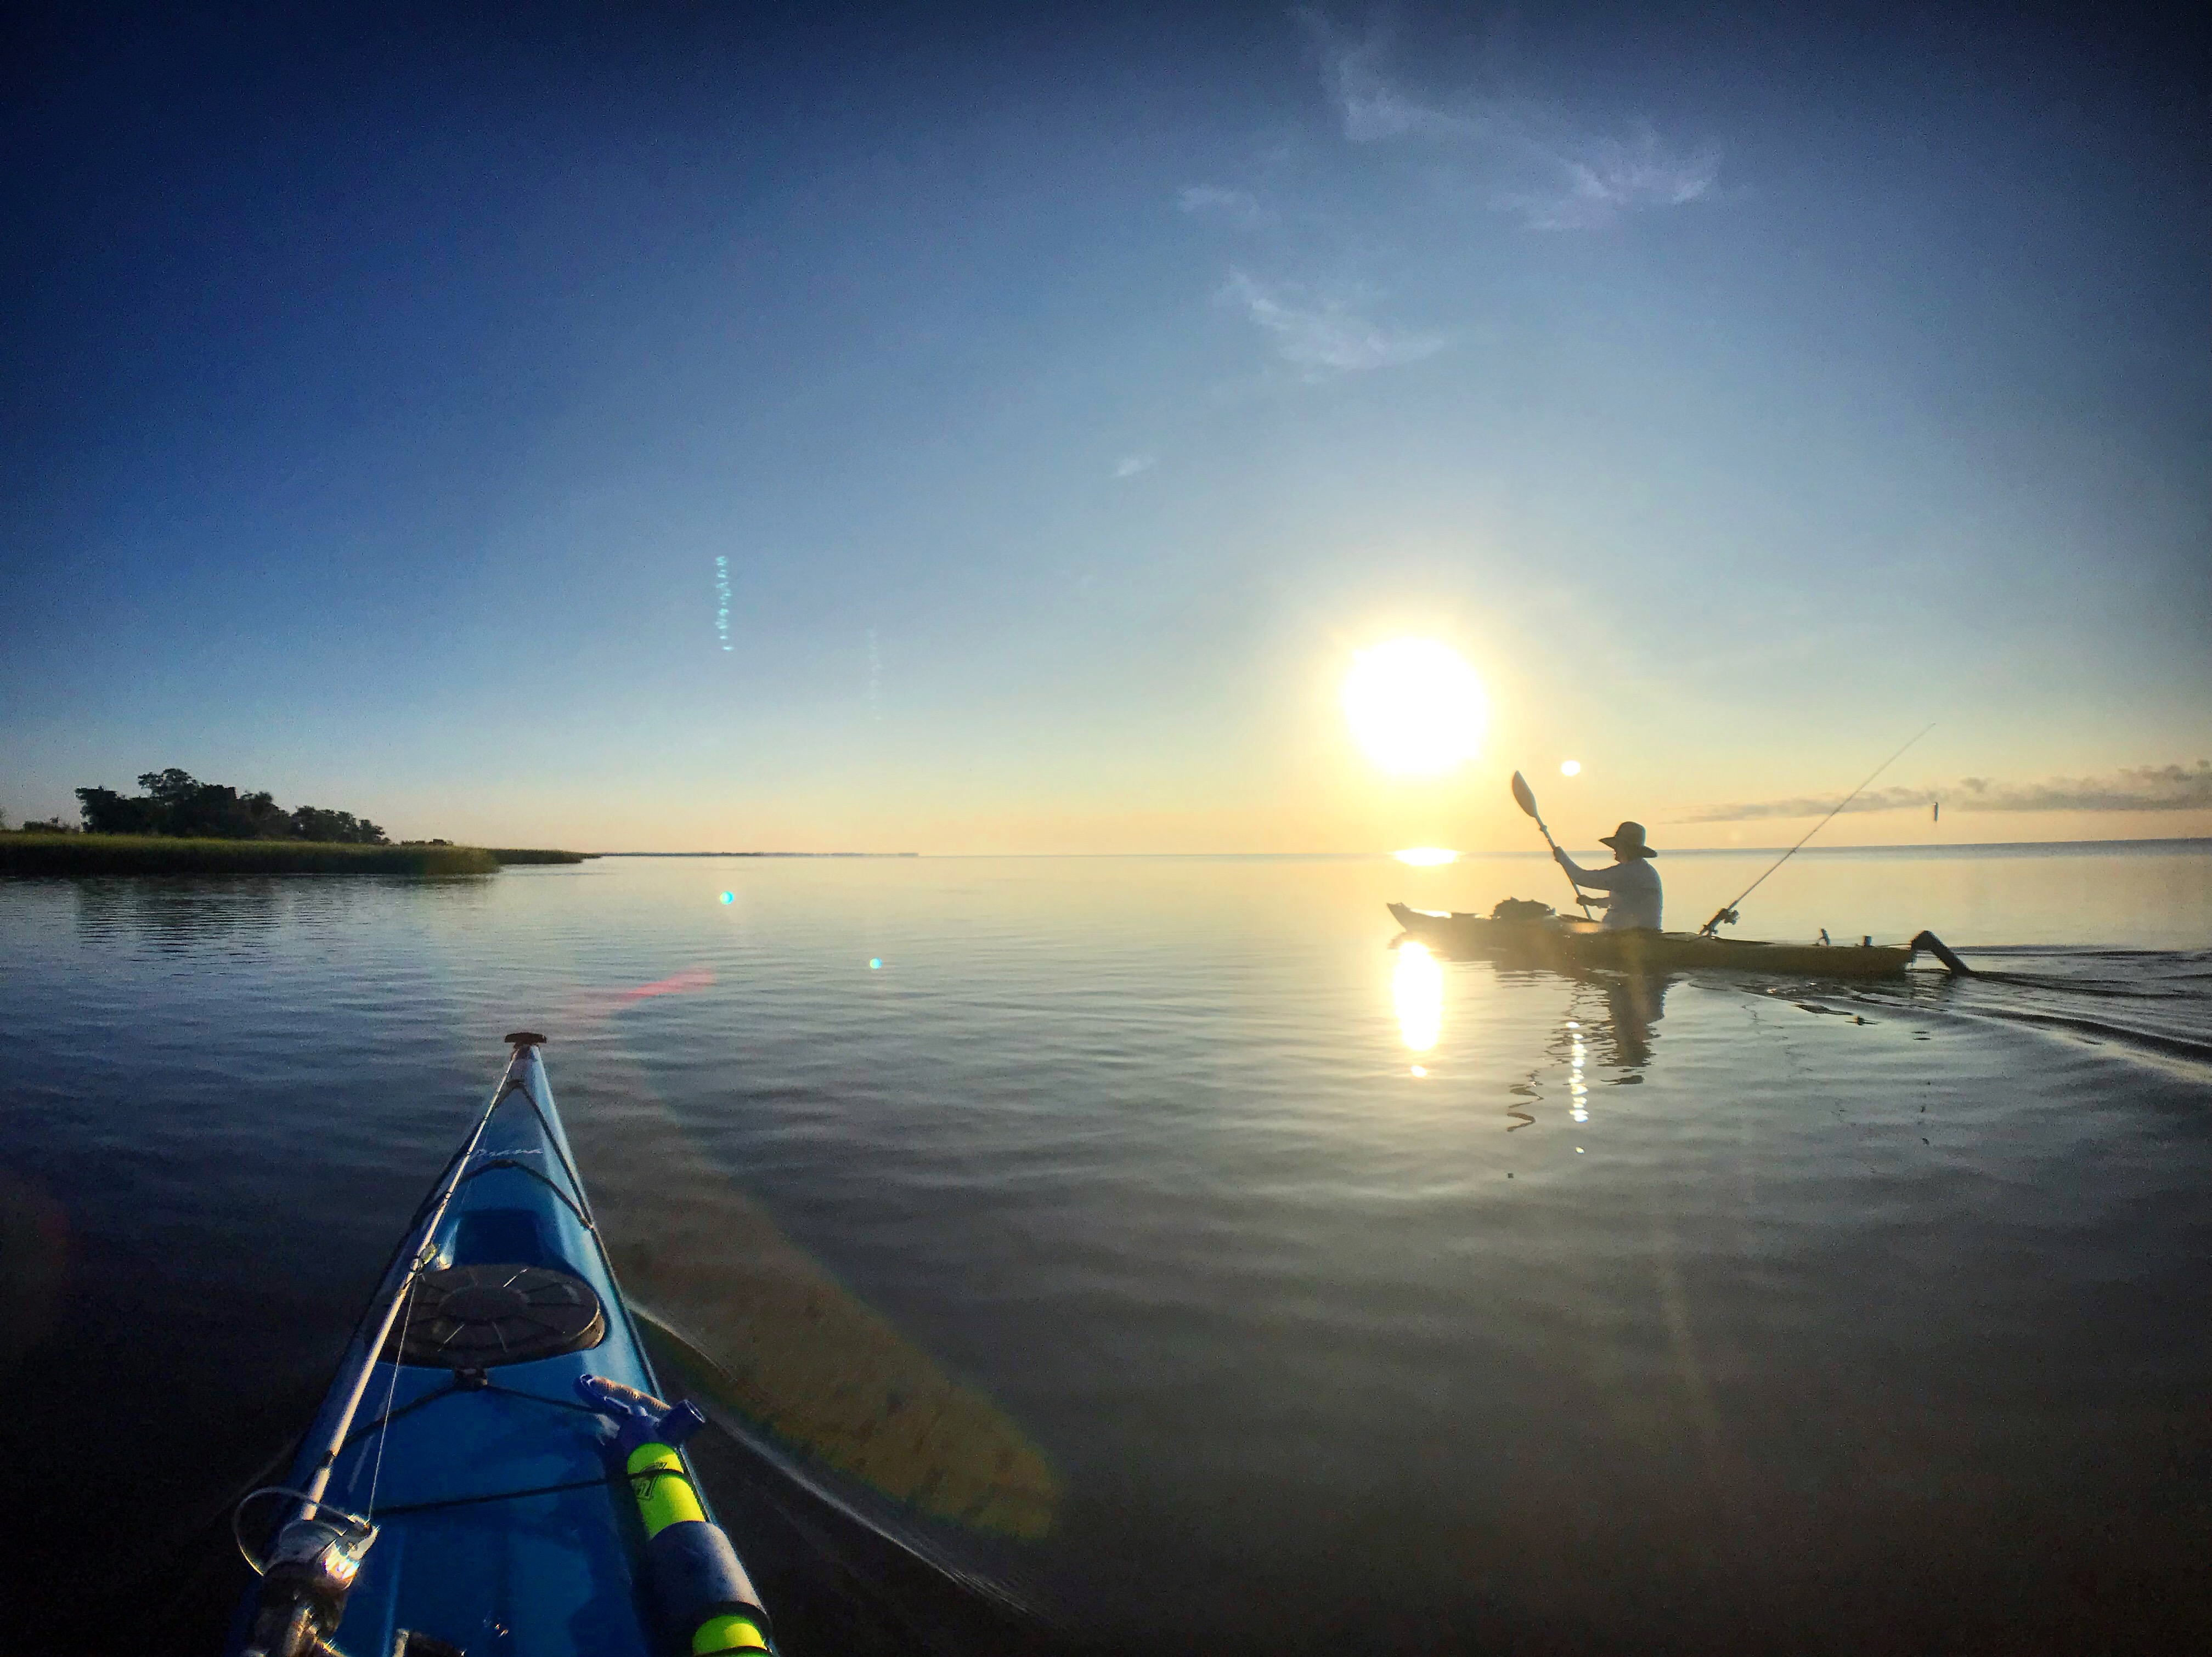 Two kayakers paddling on the open water at sunset.